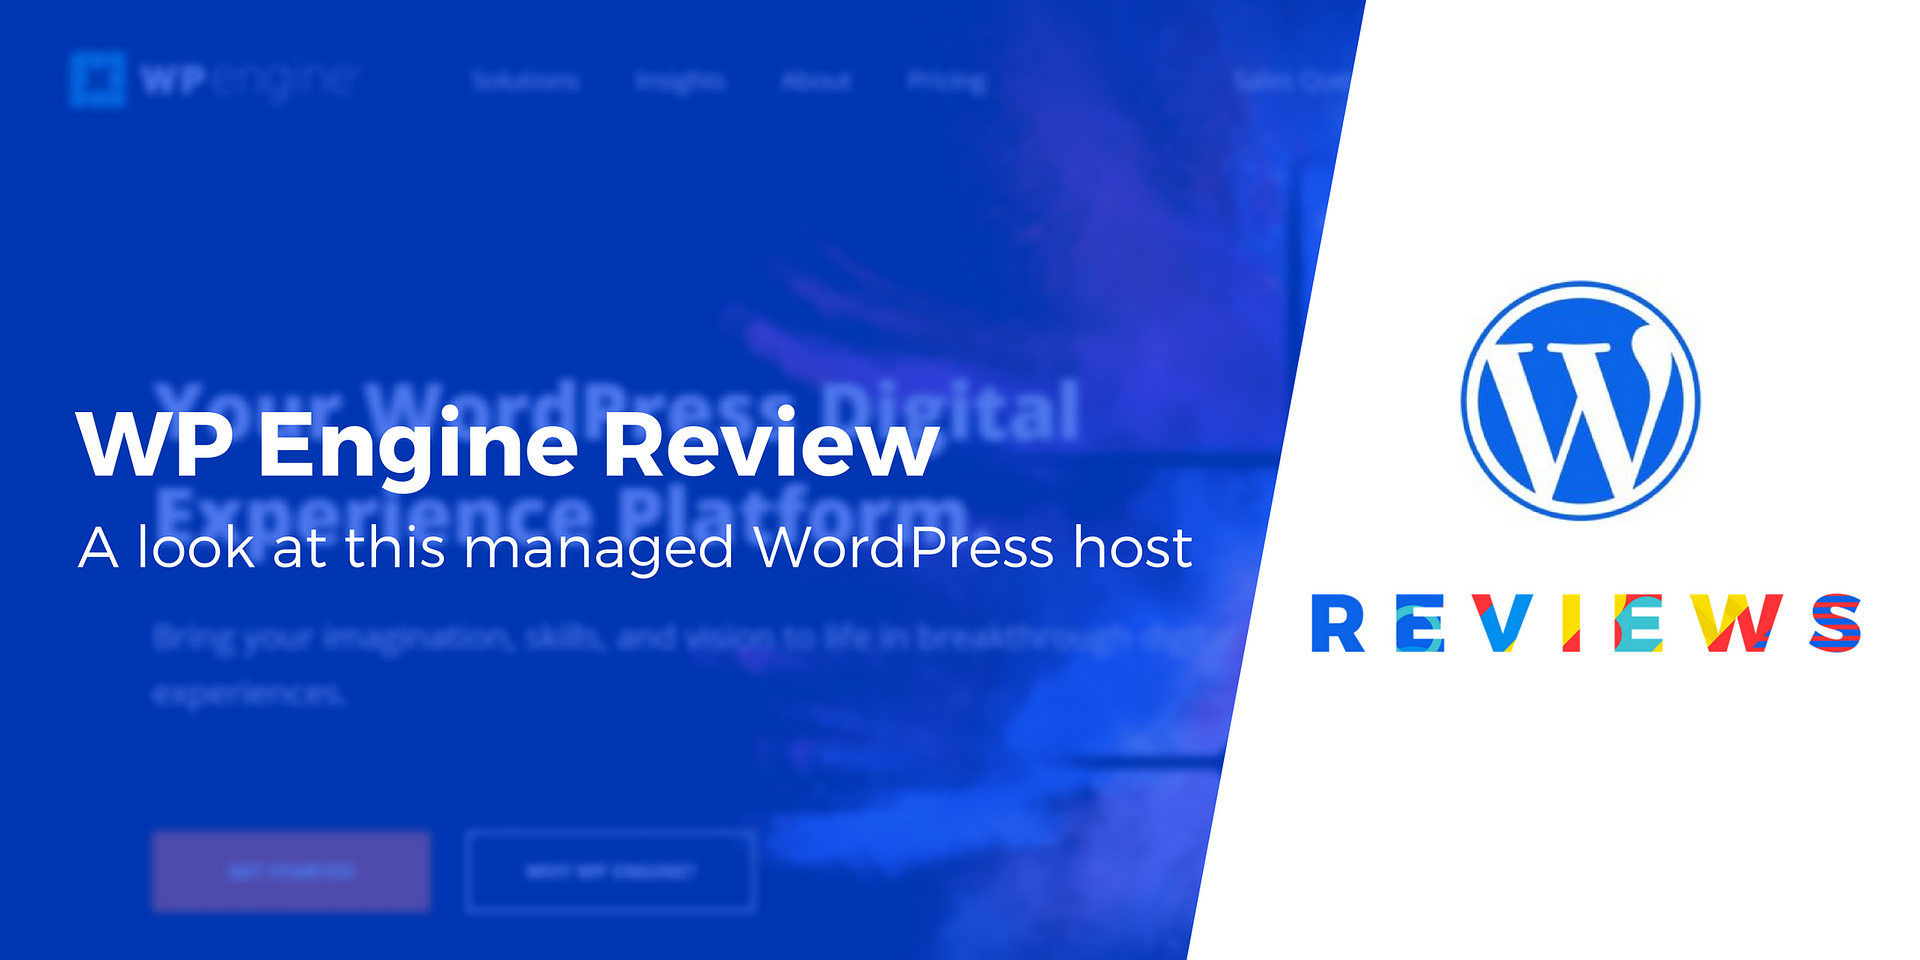 Review 6 Months Later WordPress Hosting WP Engine